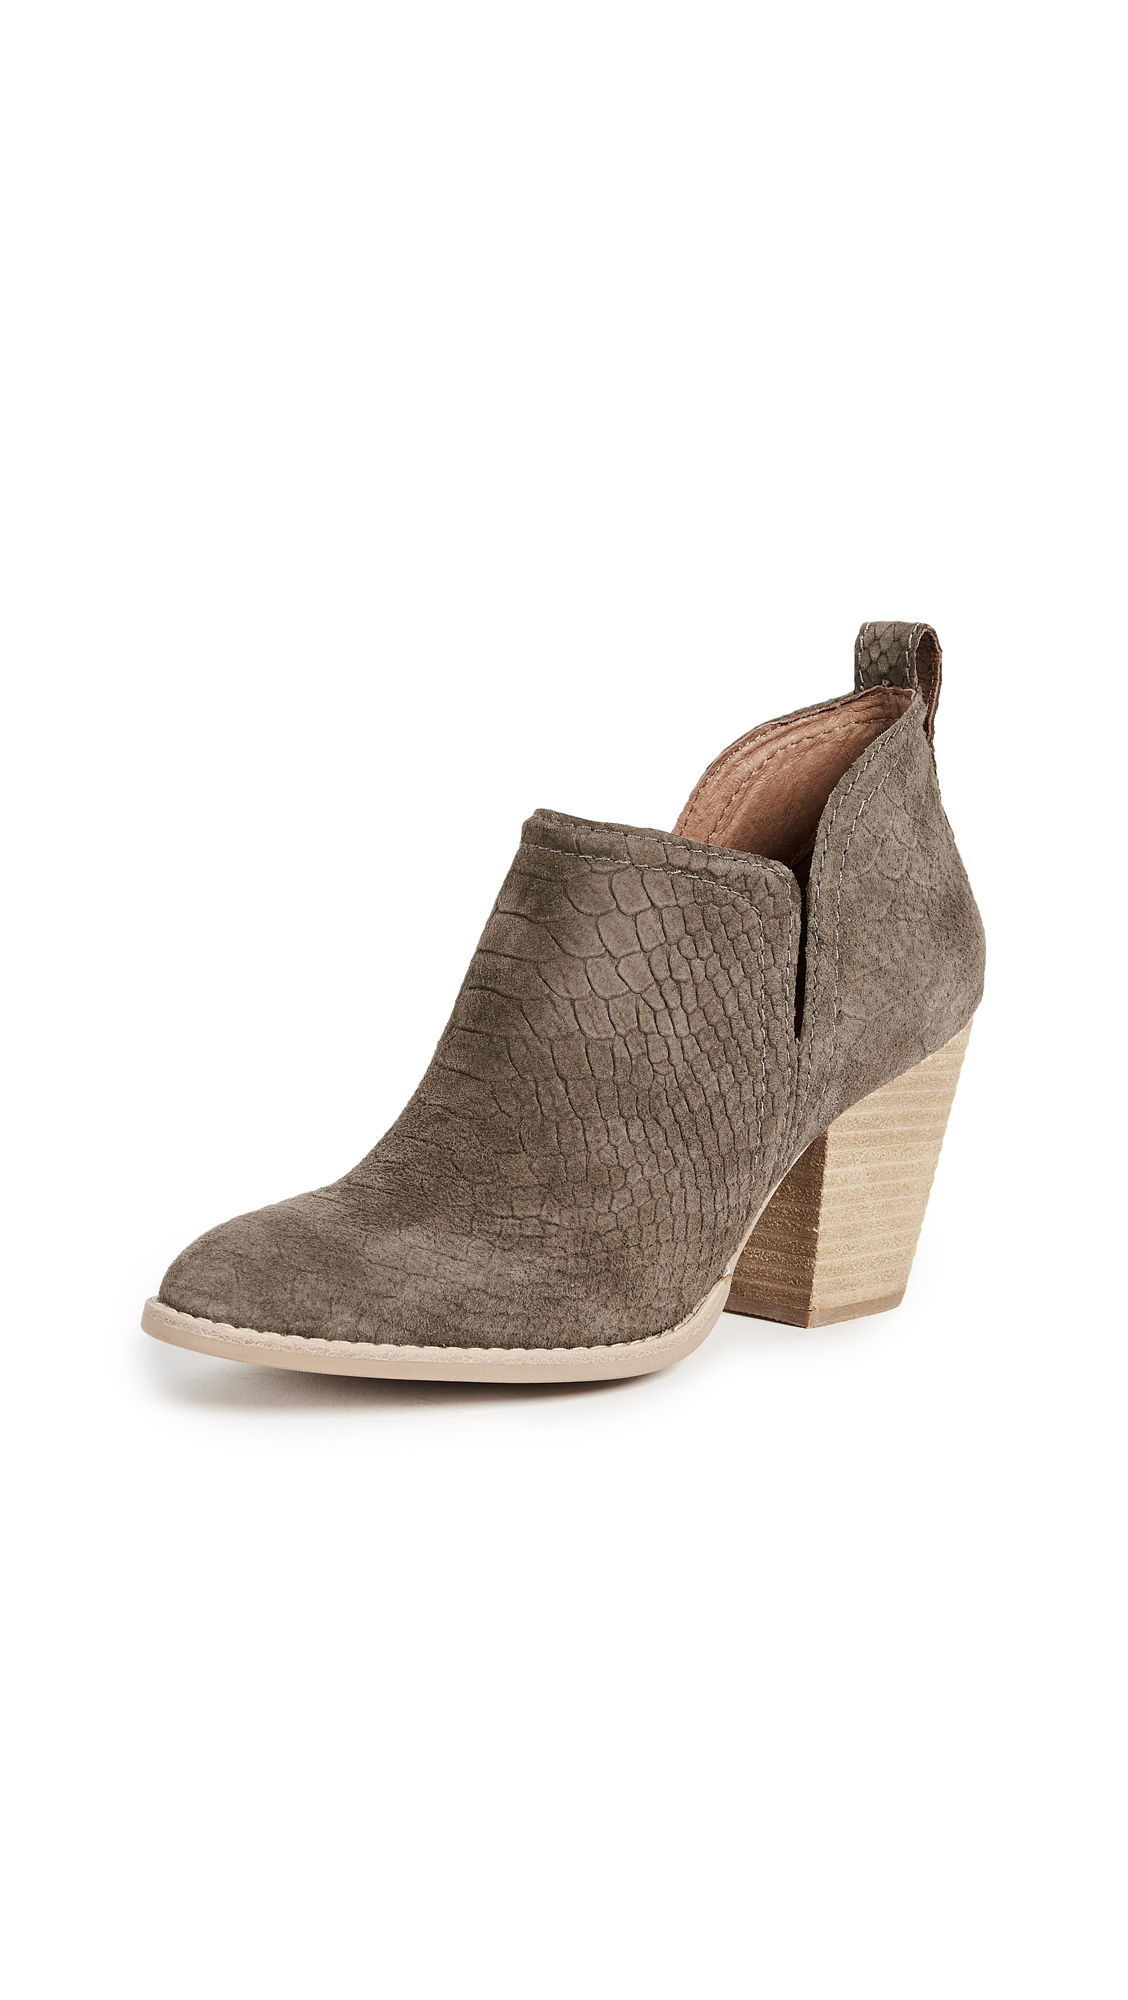 Jeffrey Campbell Rosalee Ankle Booties - Khaki